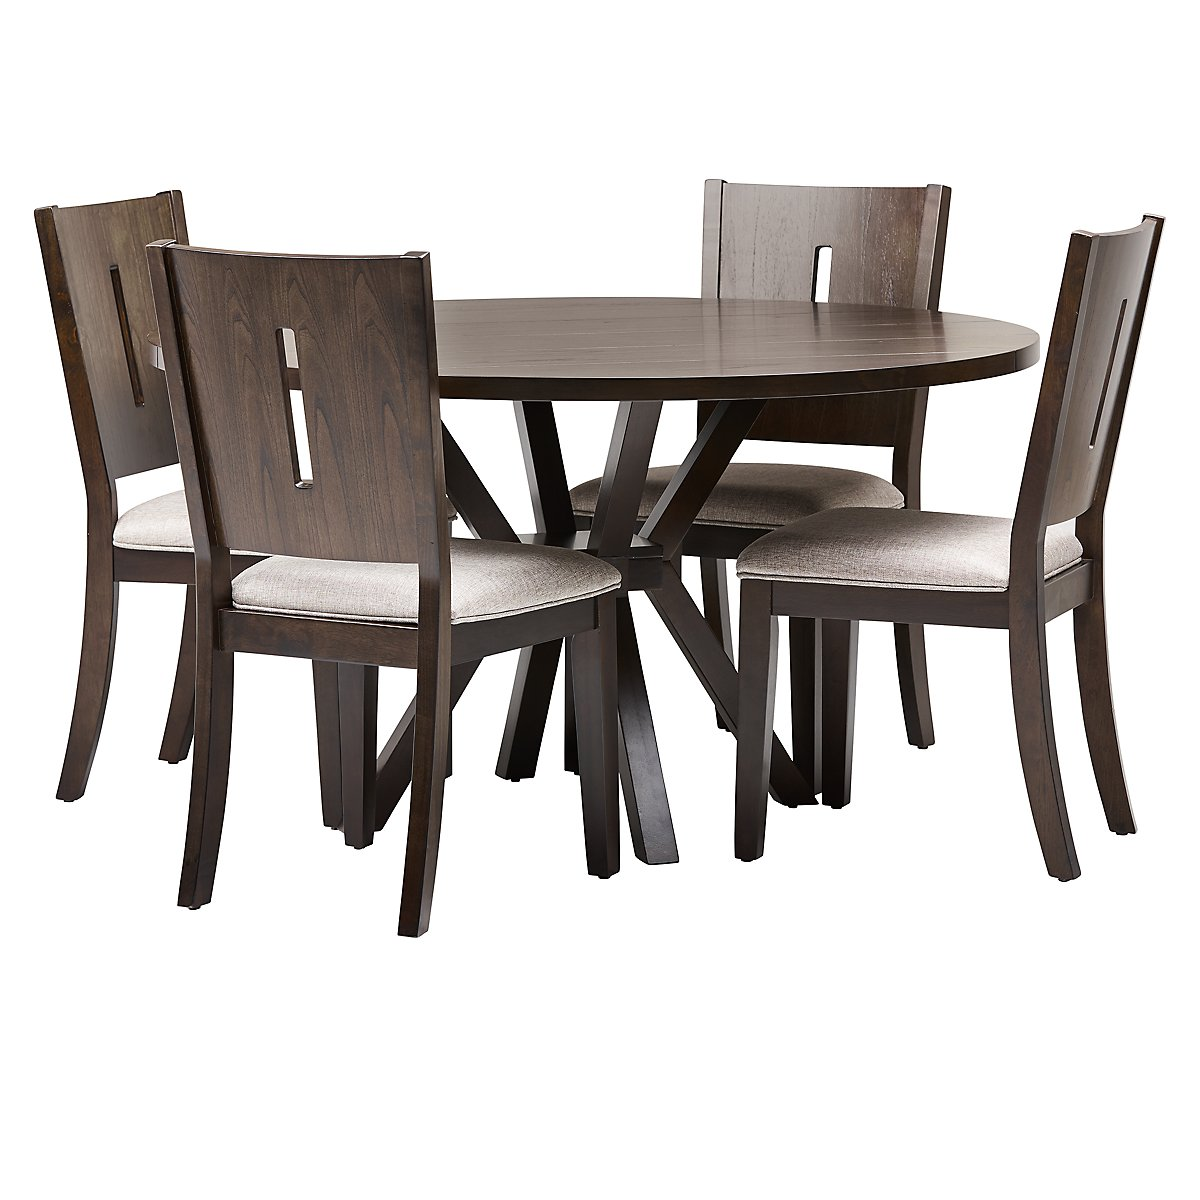 Bayberry Dark Tone Round Table 4 Chairs: Sienna Dark Tone Table & 4 Wood Chairs